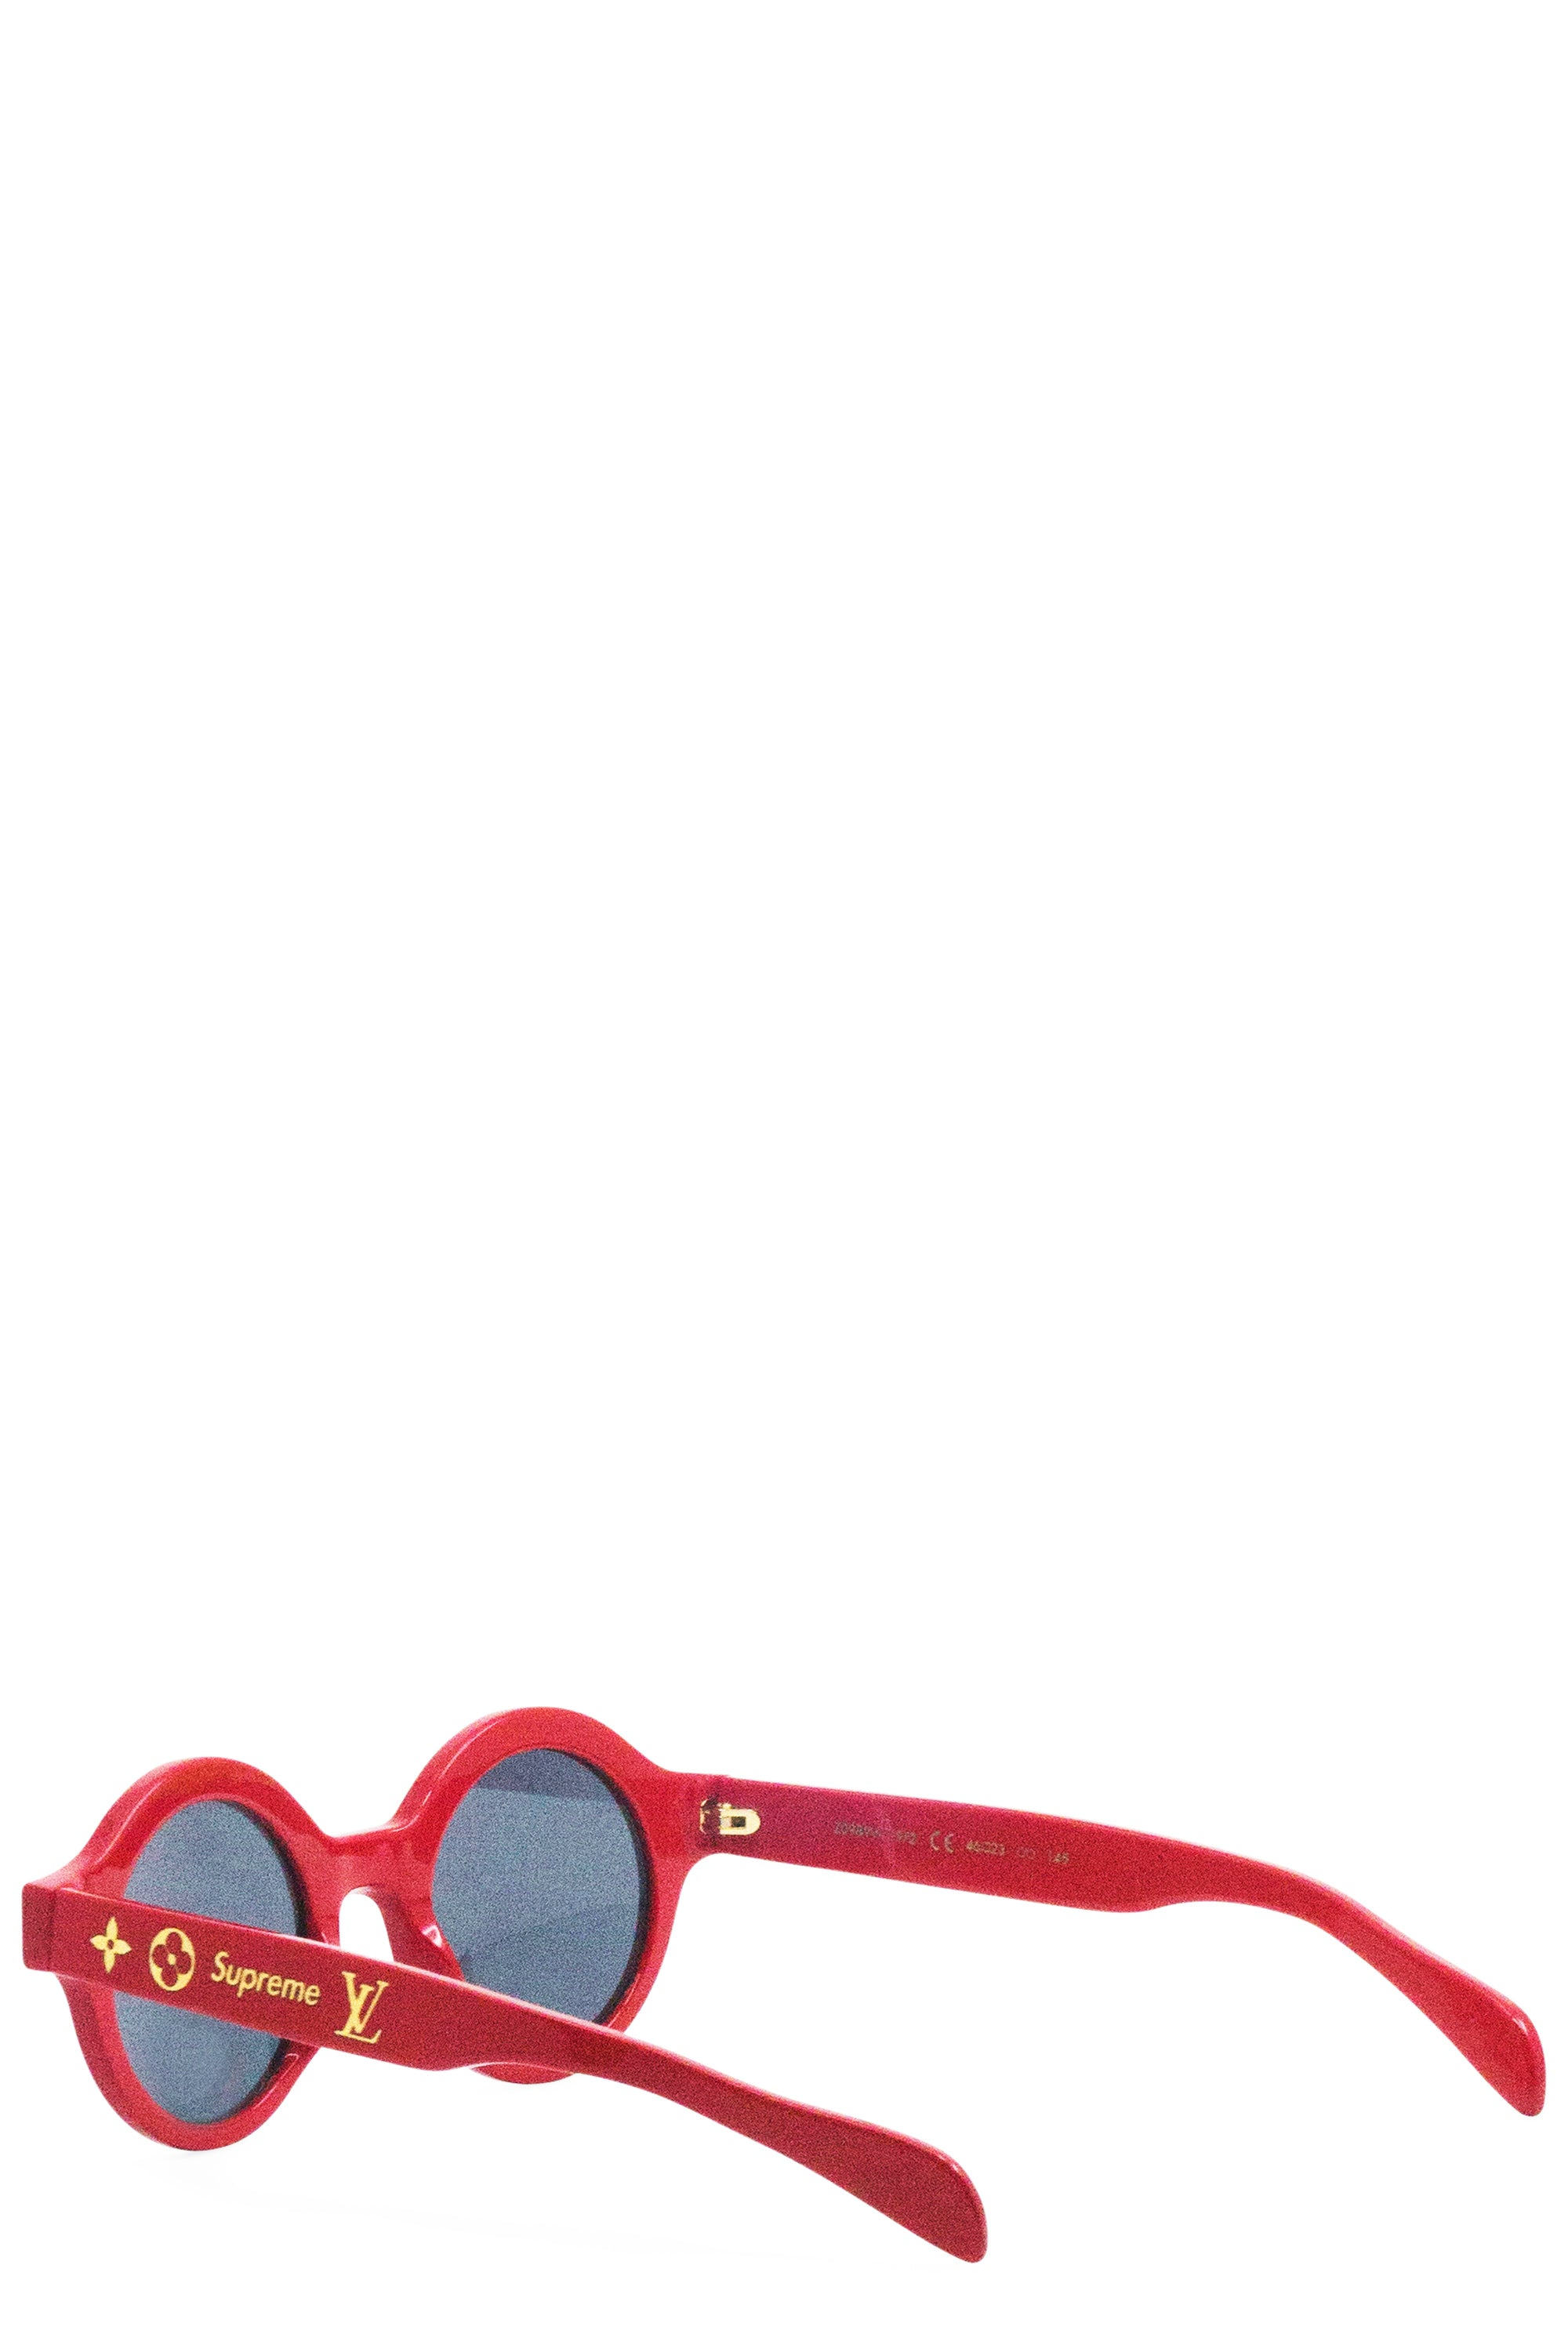 LOUIS VUITTON x SUPREME Sunglasses